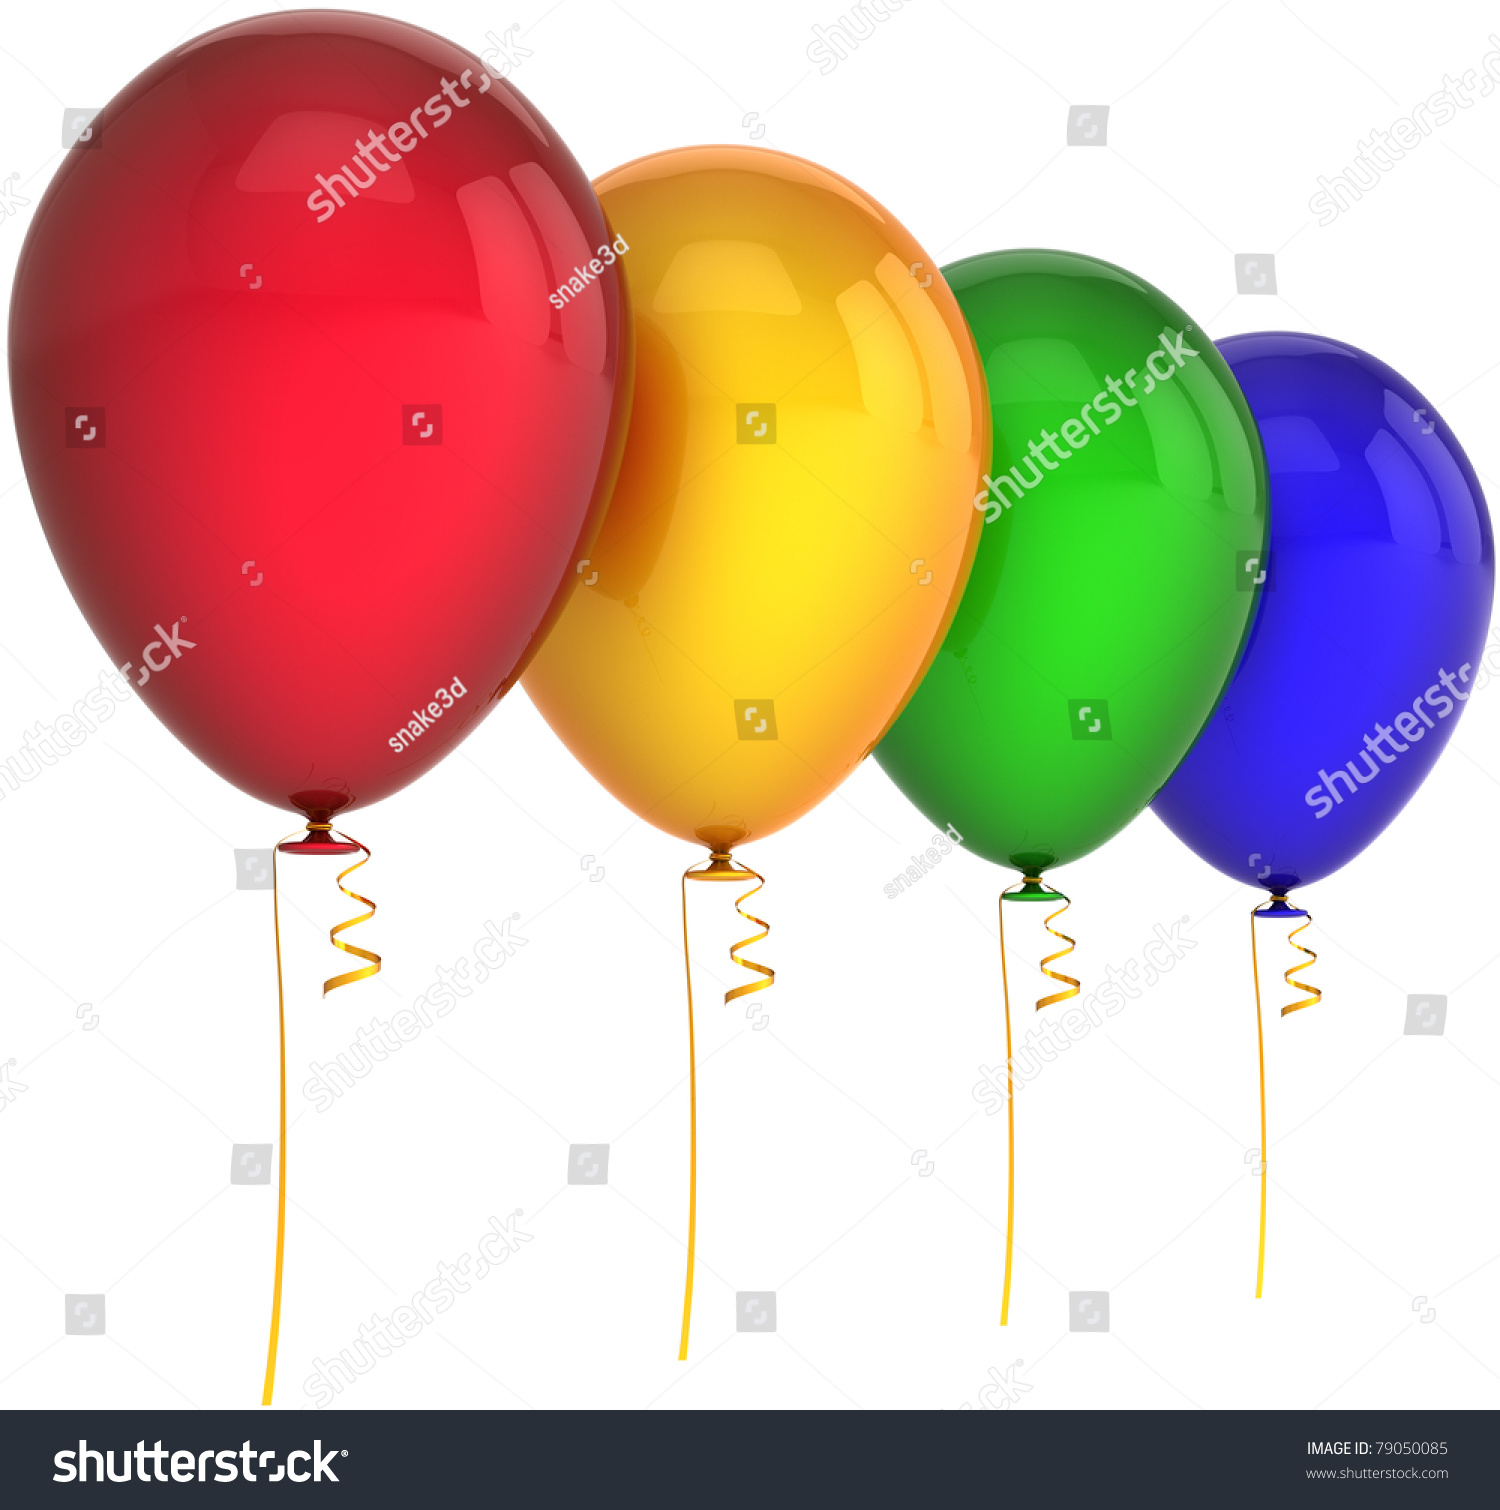 Green and blue balloons - Balloons Happy Birthday Party Decoration 4 Four Red Yellow Green Blue Colors Joy Positive Fun